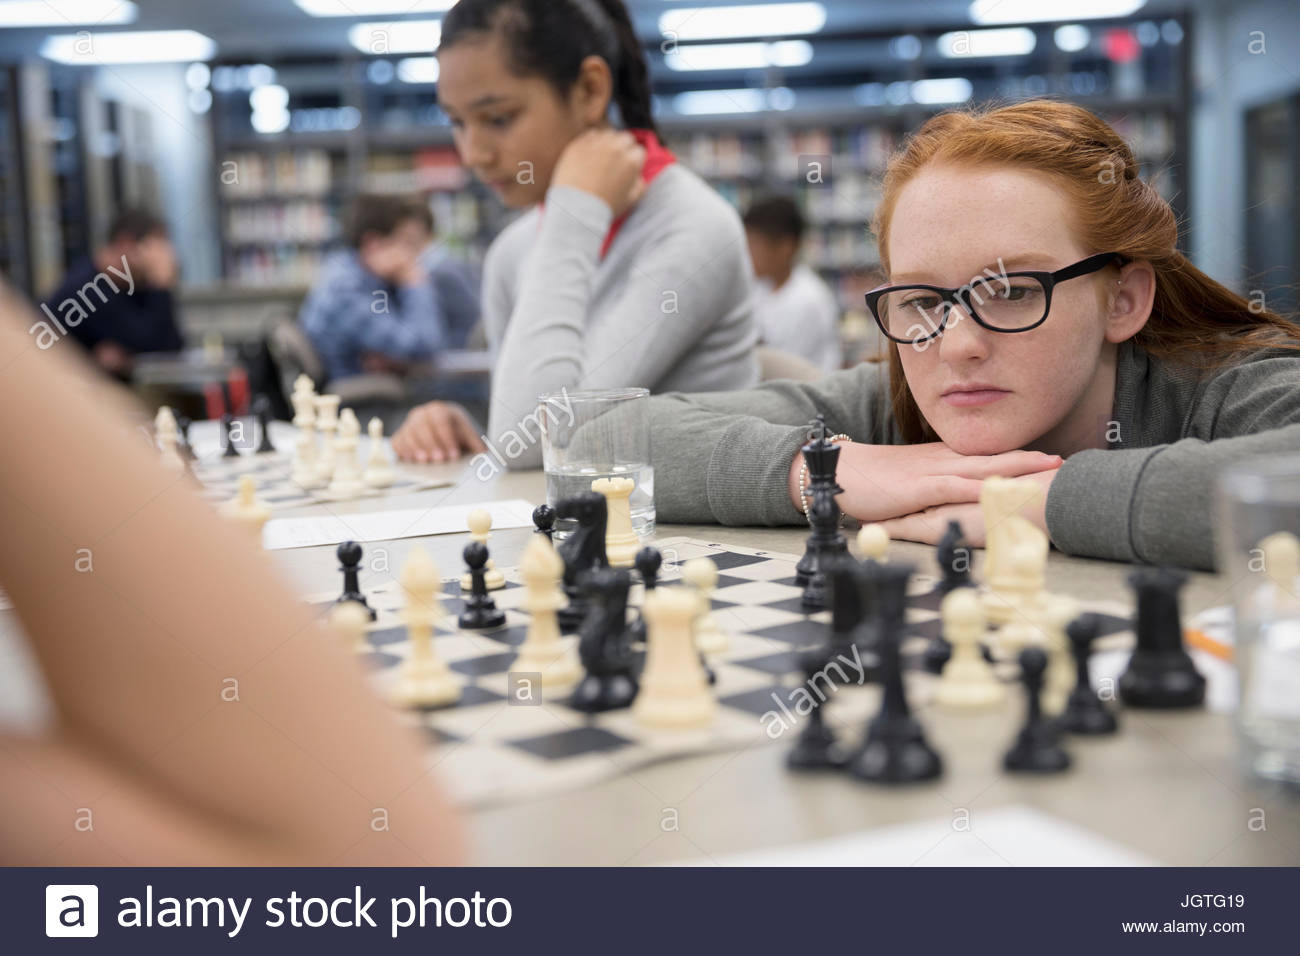 Focused girl middle school student playing chess in chess club library - Stock Image